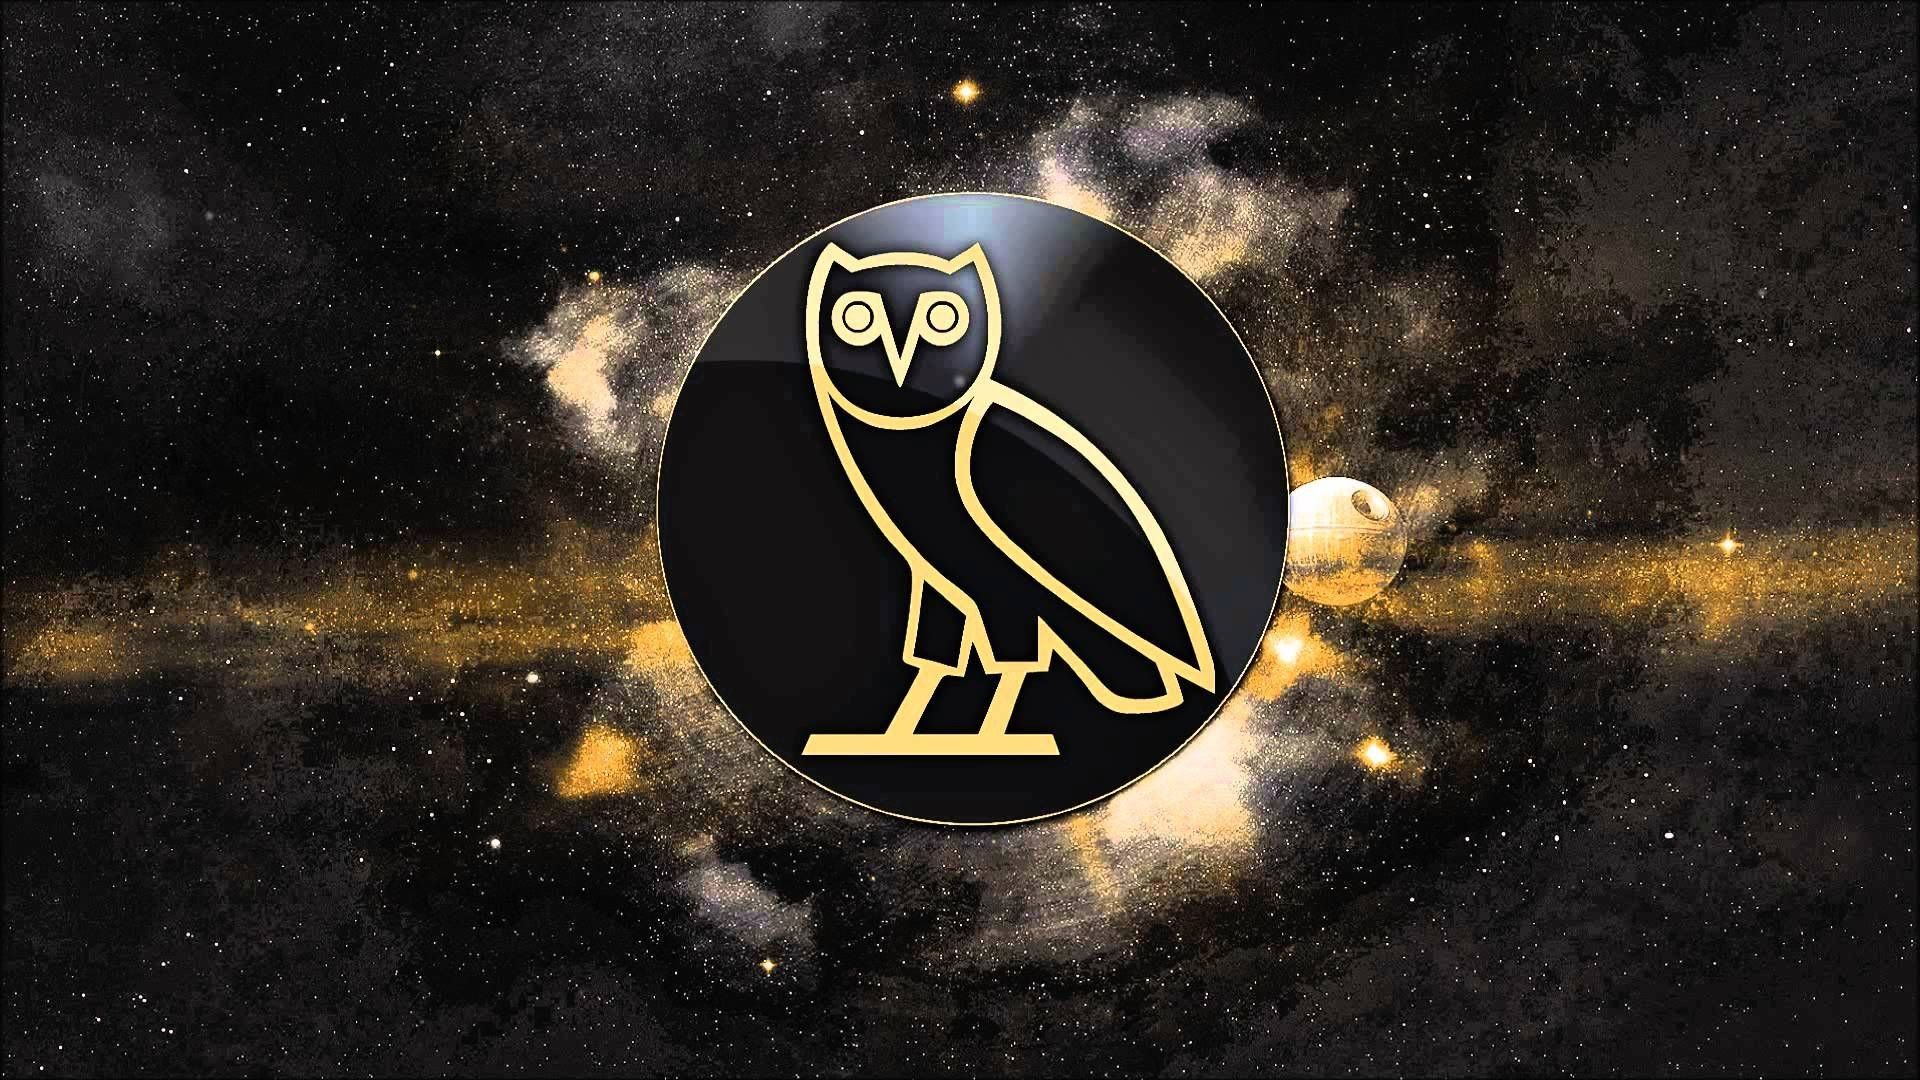 Ovo HD Wallpaper (79+ images)